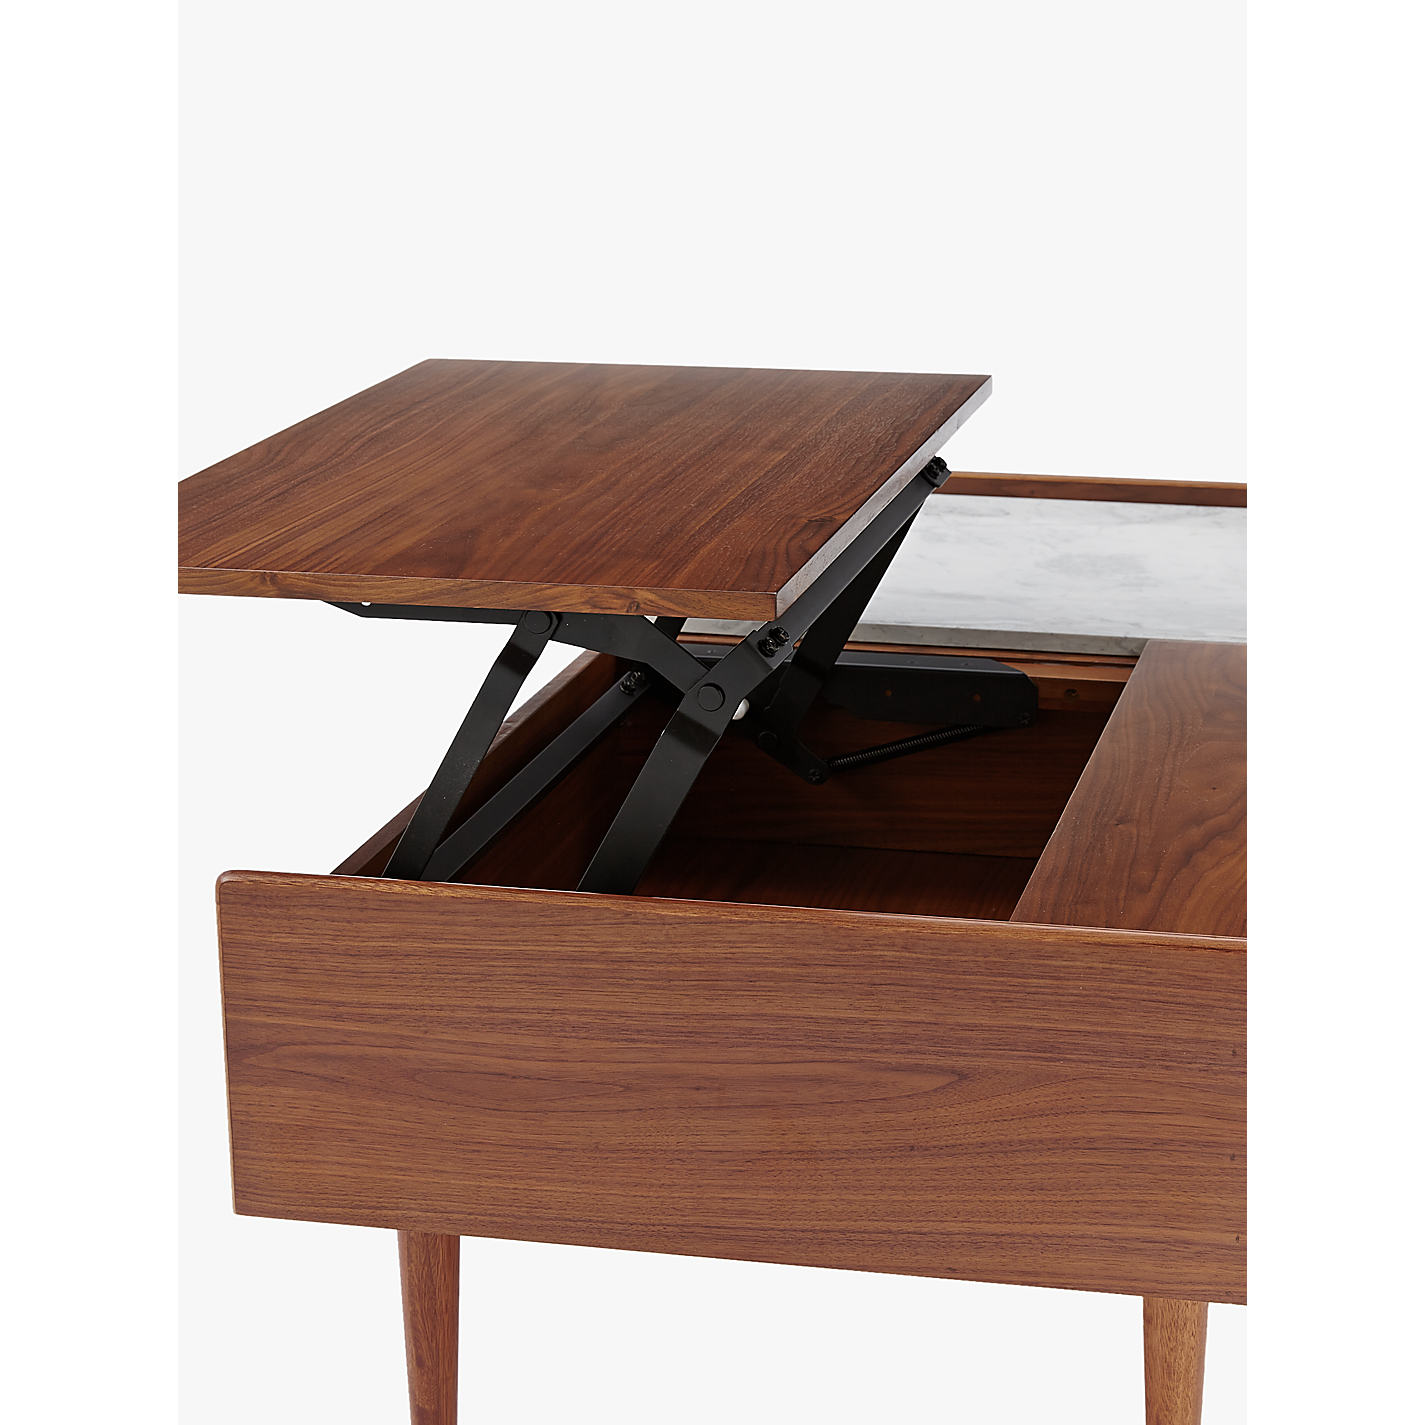 Buy west elm mid century pop up storage coffee table john lewis buy west elm mid century pop up storage coffee table online at johnlewis geotapseo Image collections